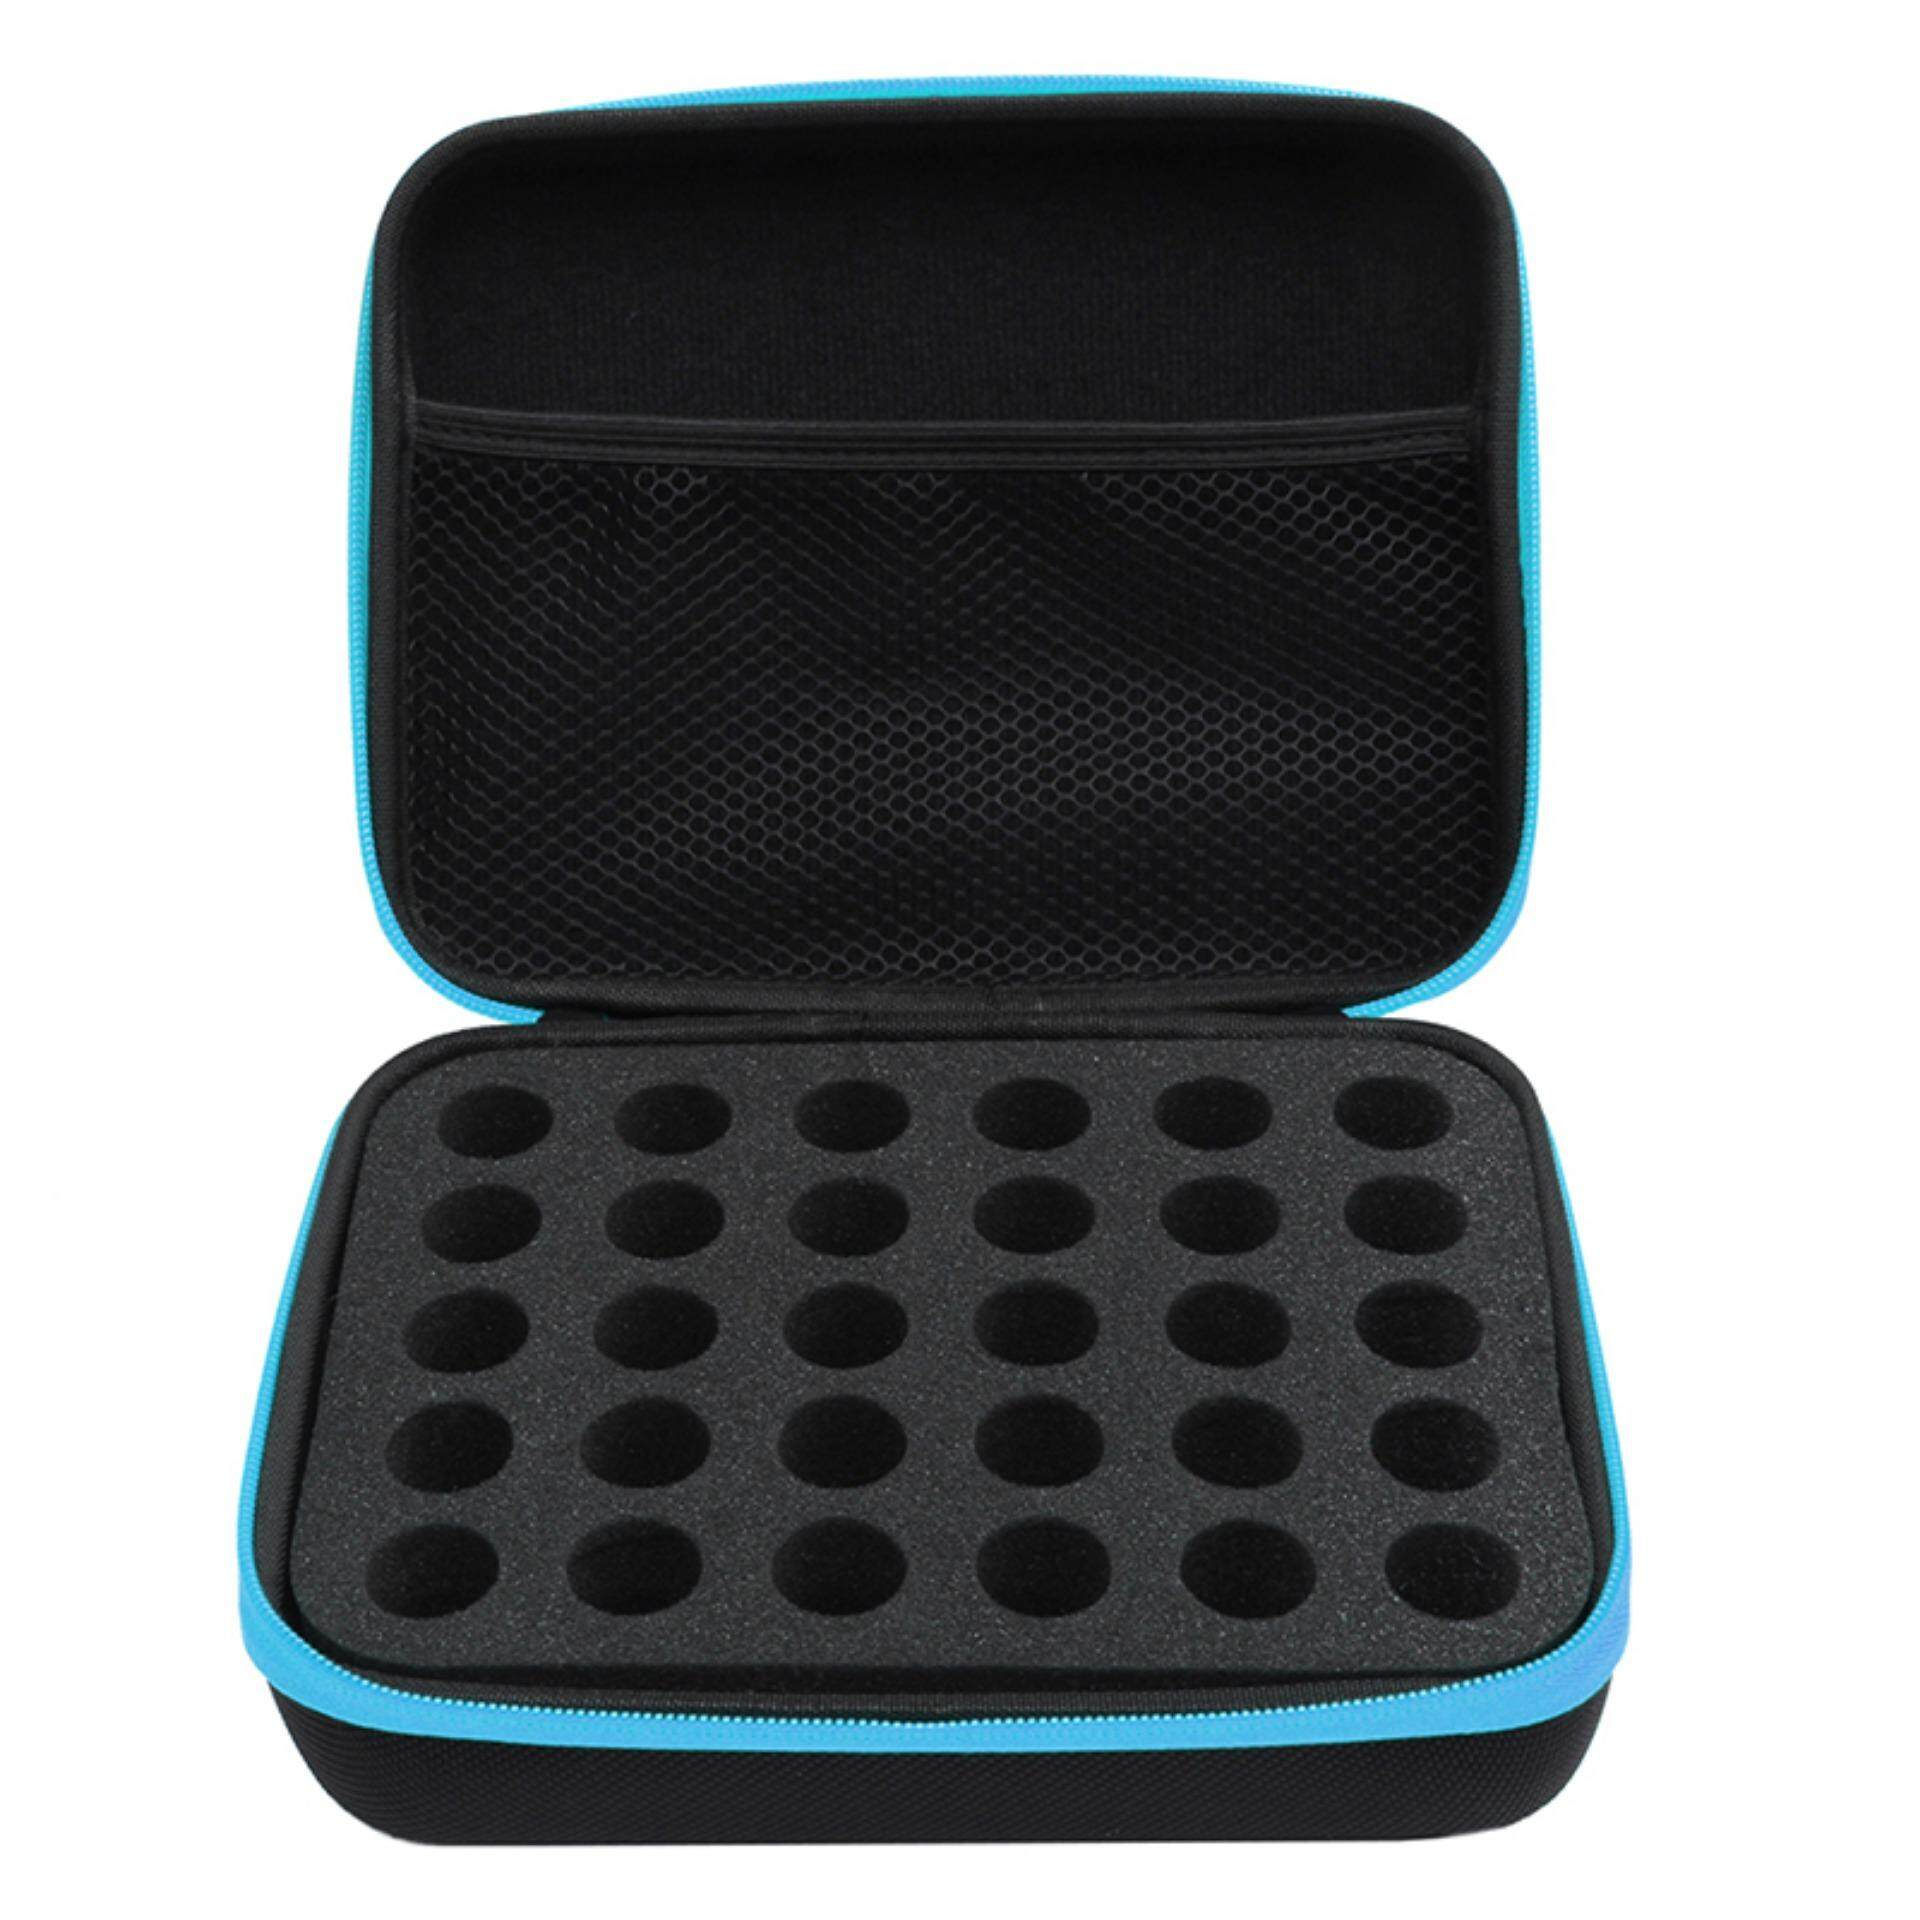 30 Bottles Essential Oil Carry Case 10ml Holder Storage Aromatherapy Hand Bag Blue Warm By Warm Light.